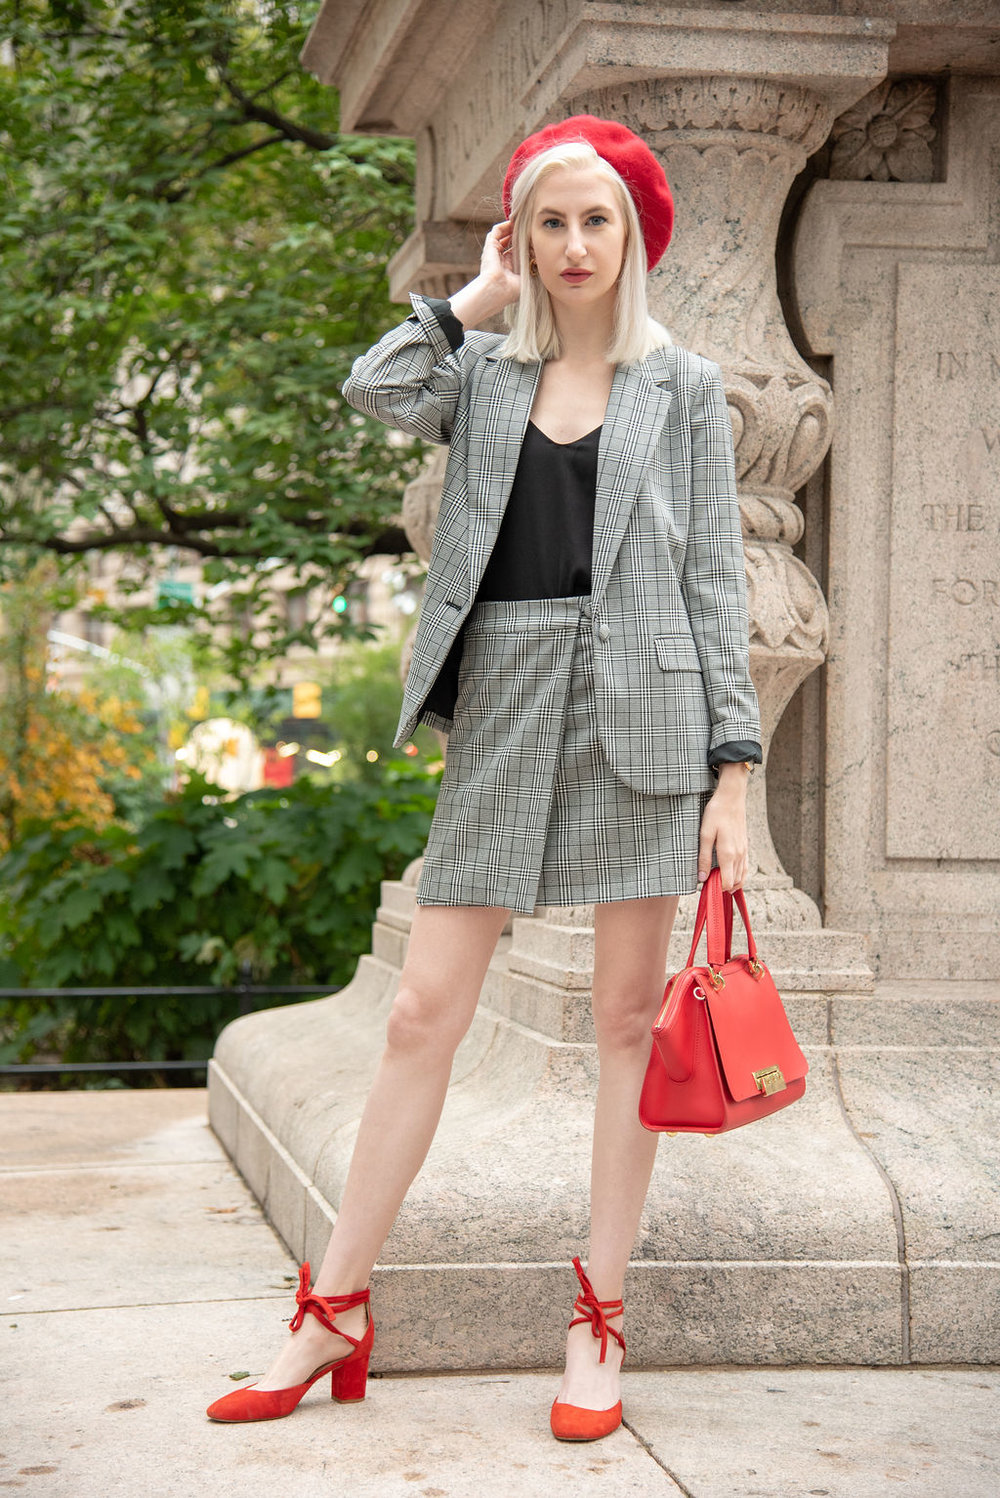 plaid suit, red beret, pantsuit outfit, jcrew outfit, fall style, new york city, daniel wellington, zac posen trapeeze bag